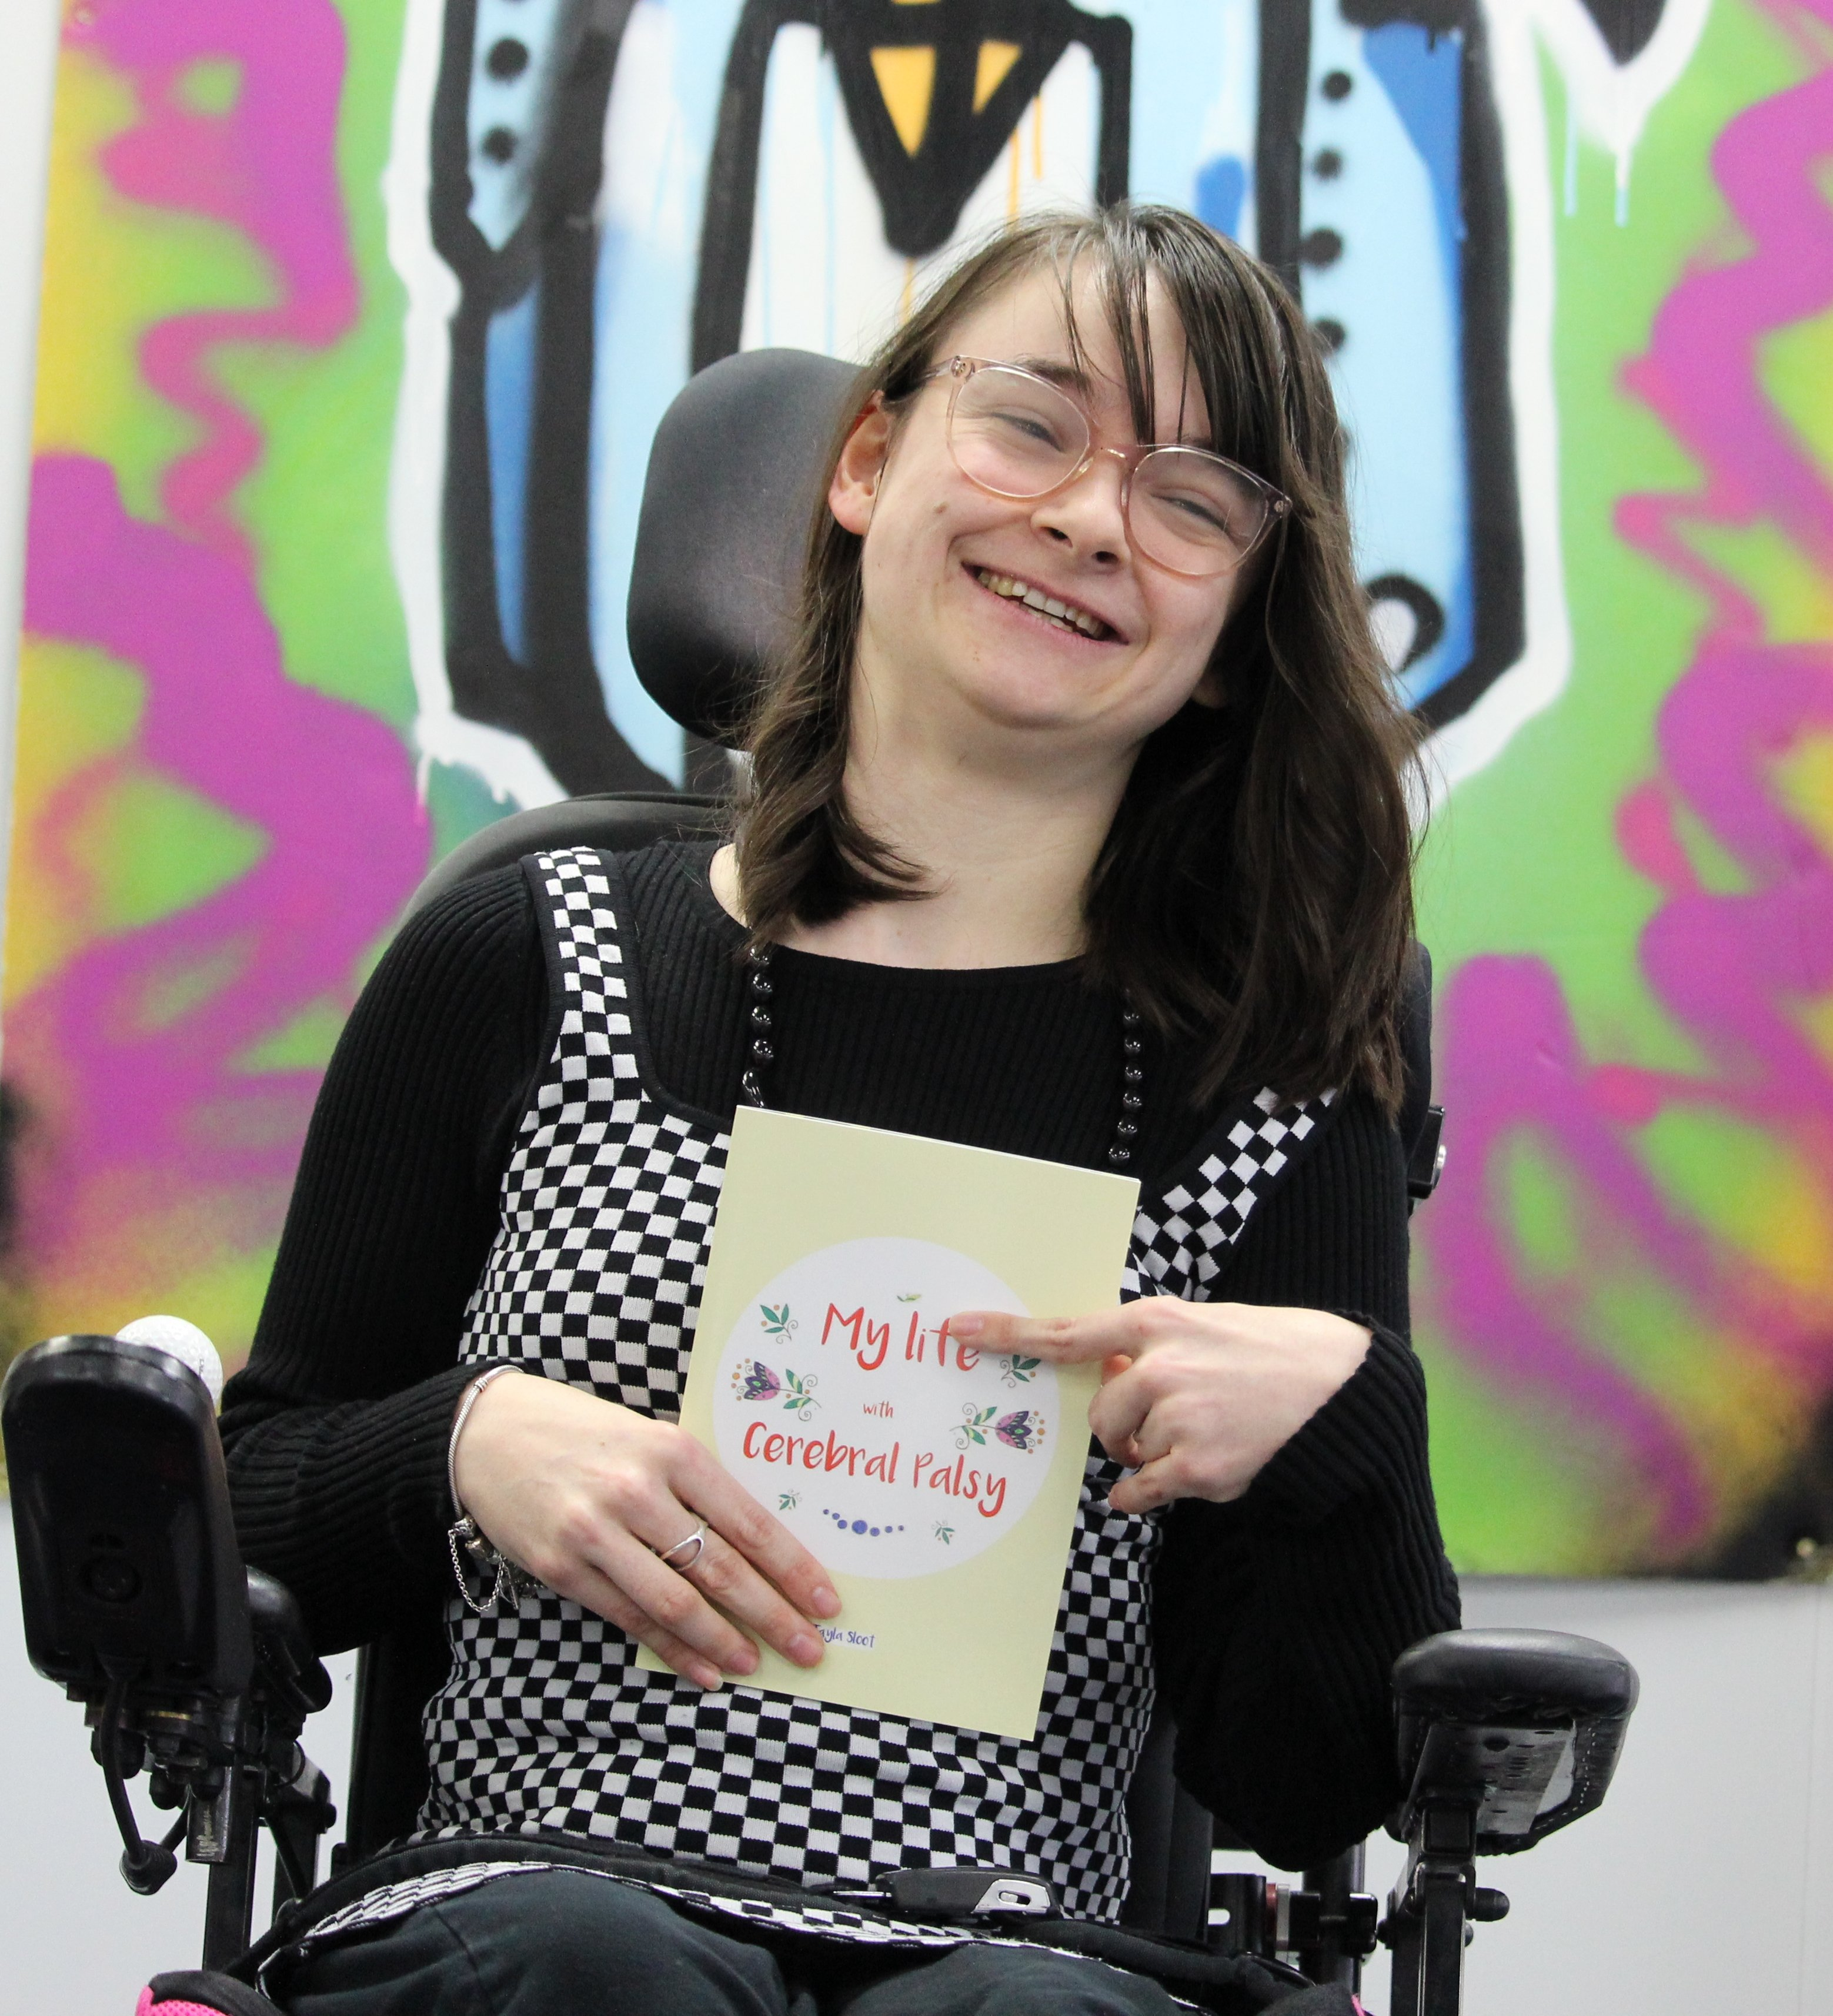 Tayla Sloot with her new book My Life with Cerebral Palsy which helps children understand her...